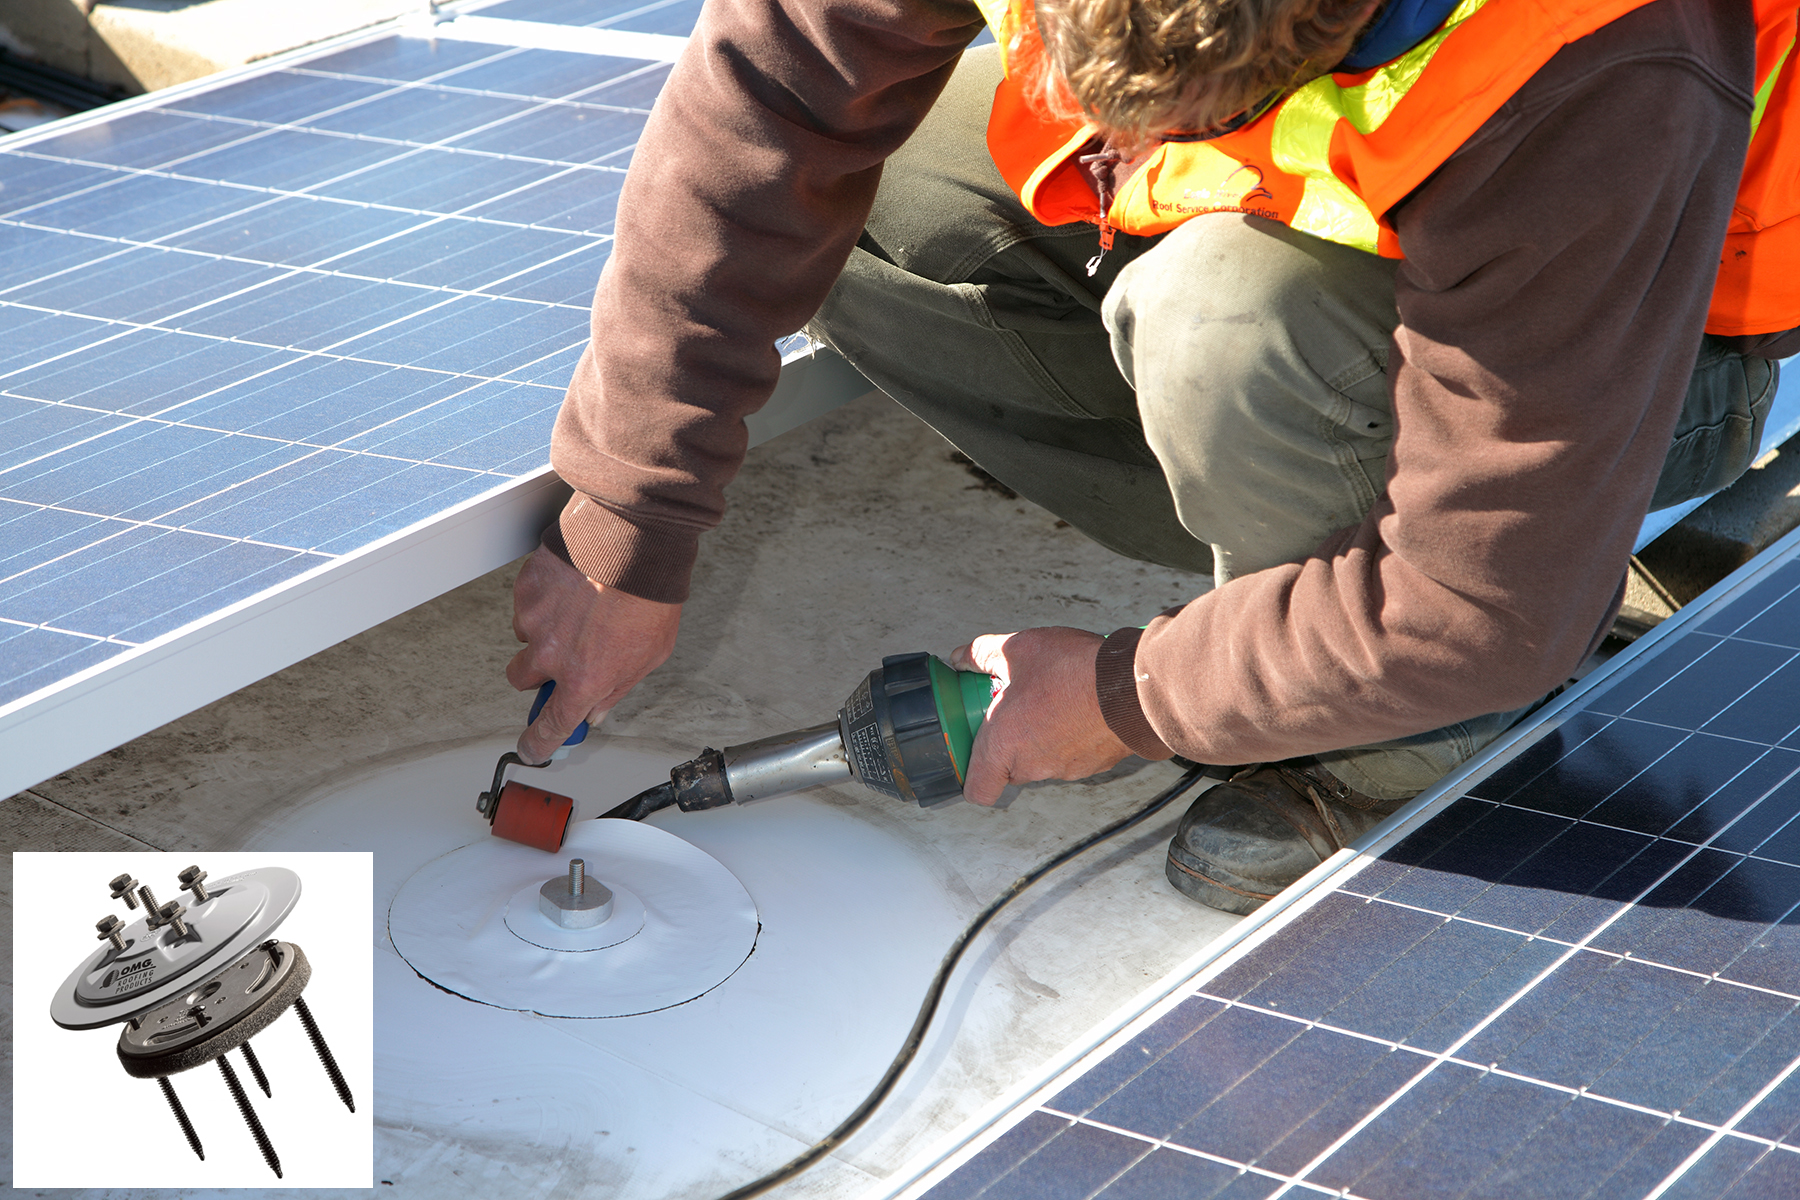 Roof-Mounted Solar: Structural and Waterproofing Considerations in C&I Applications